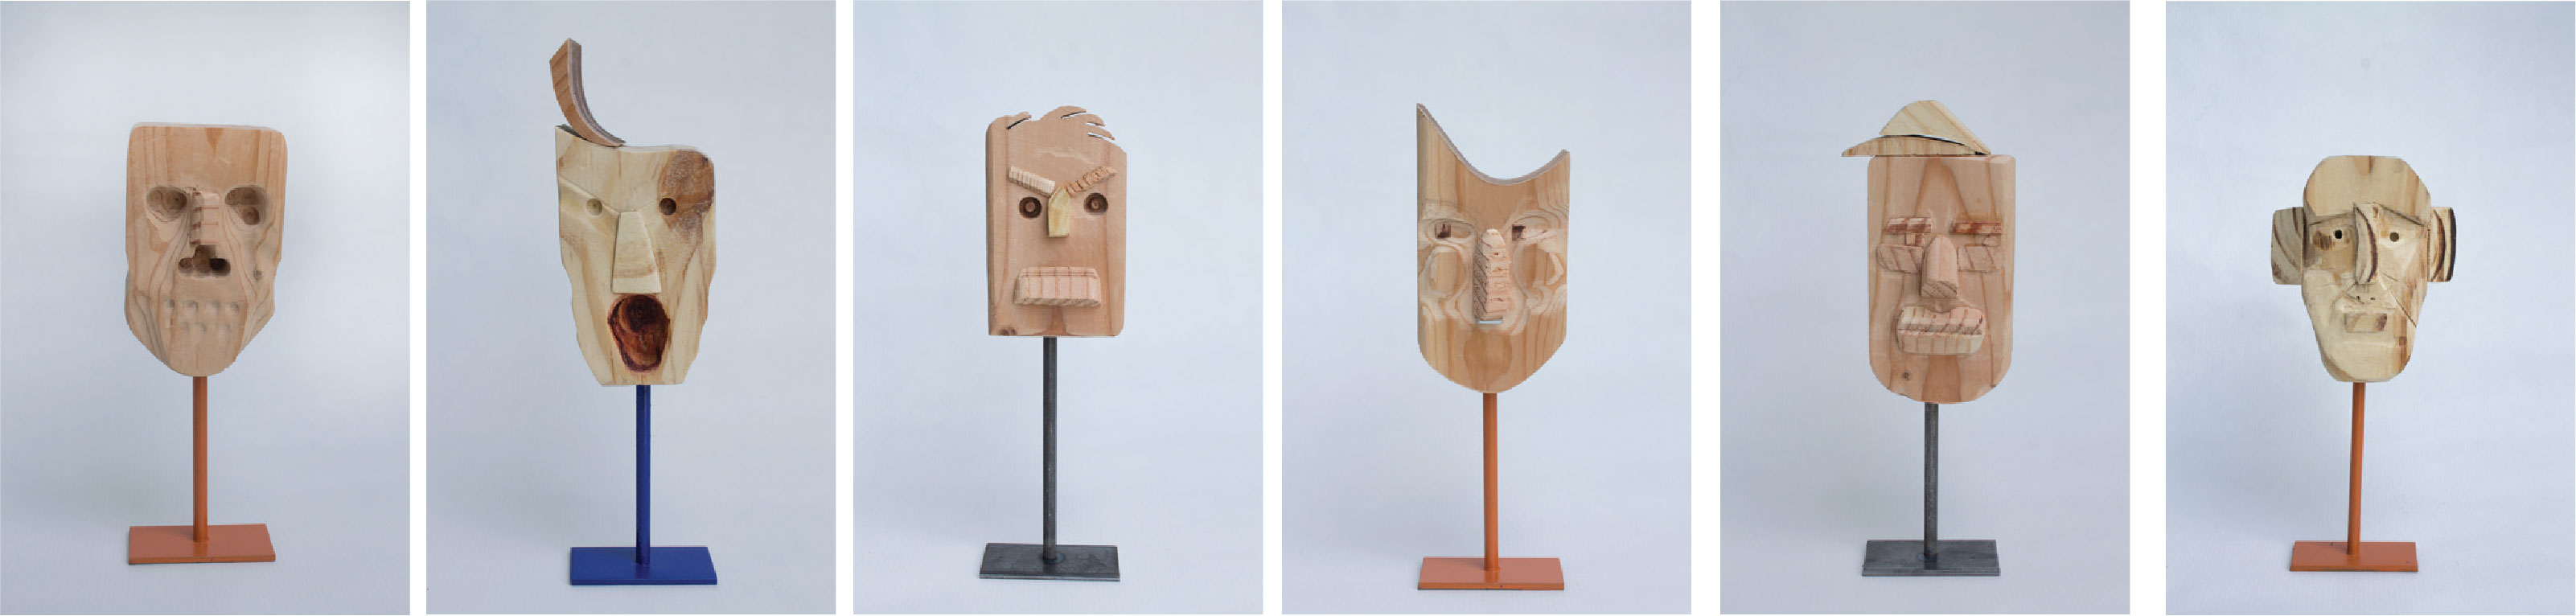 Masks wood